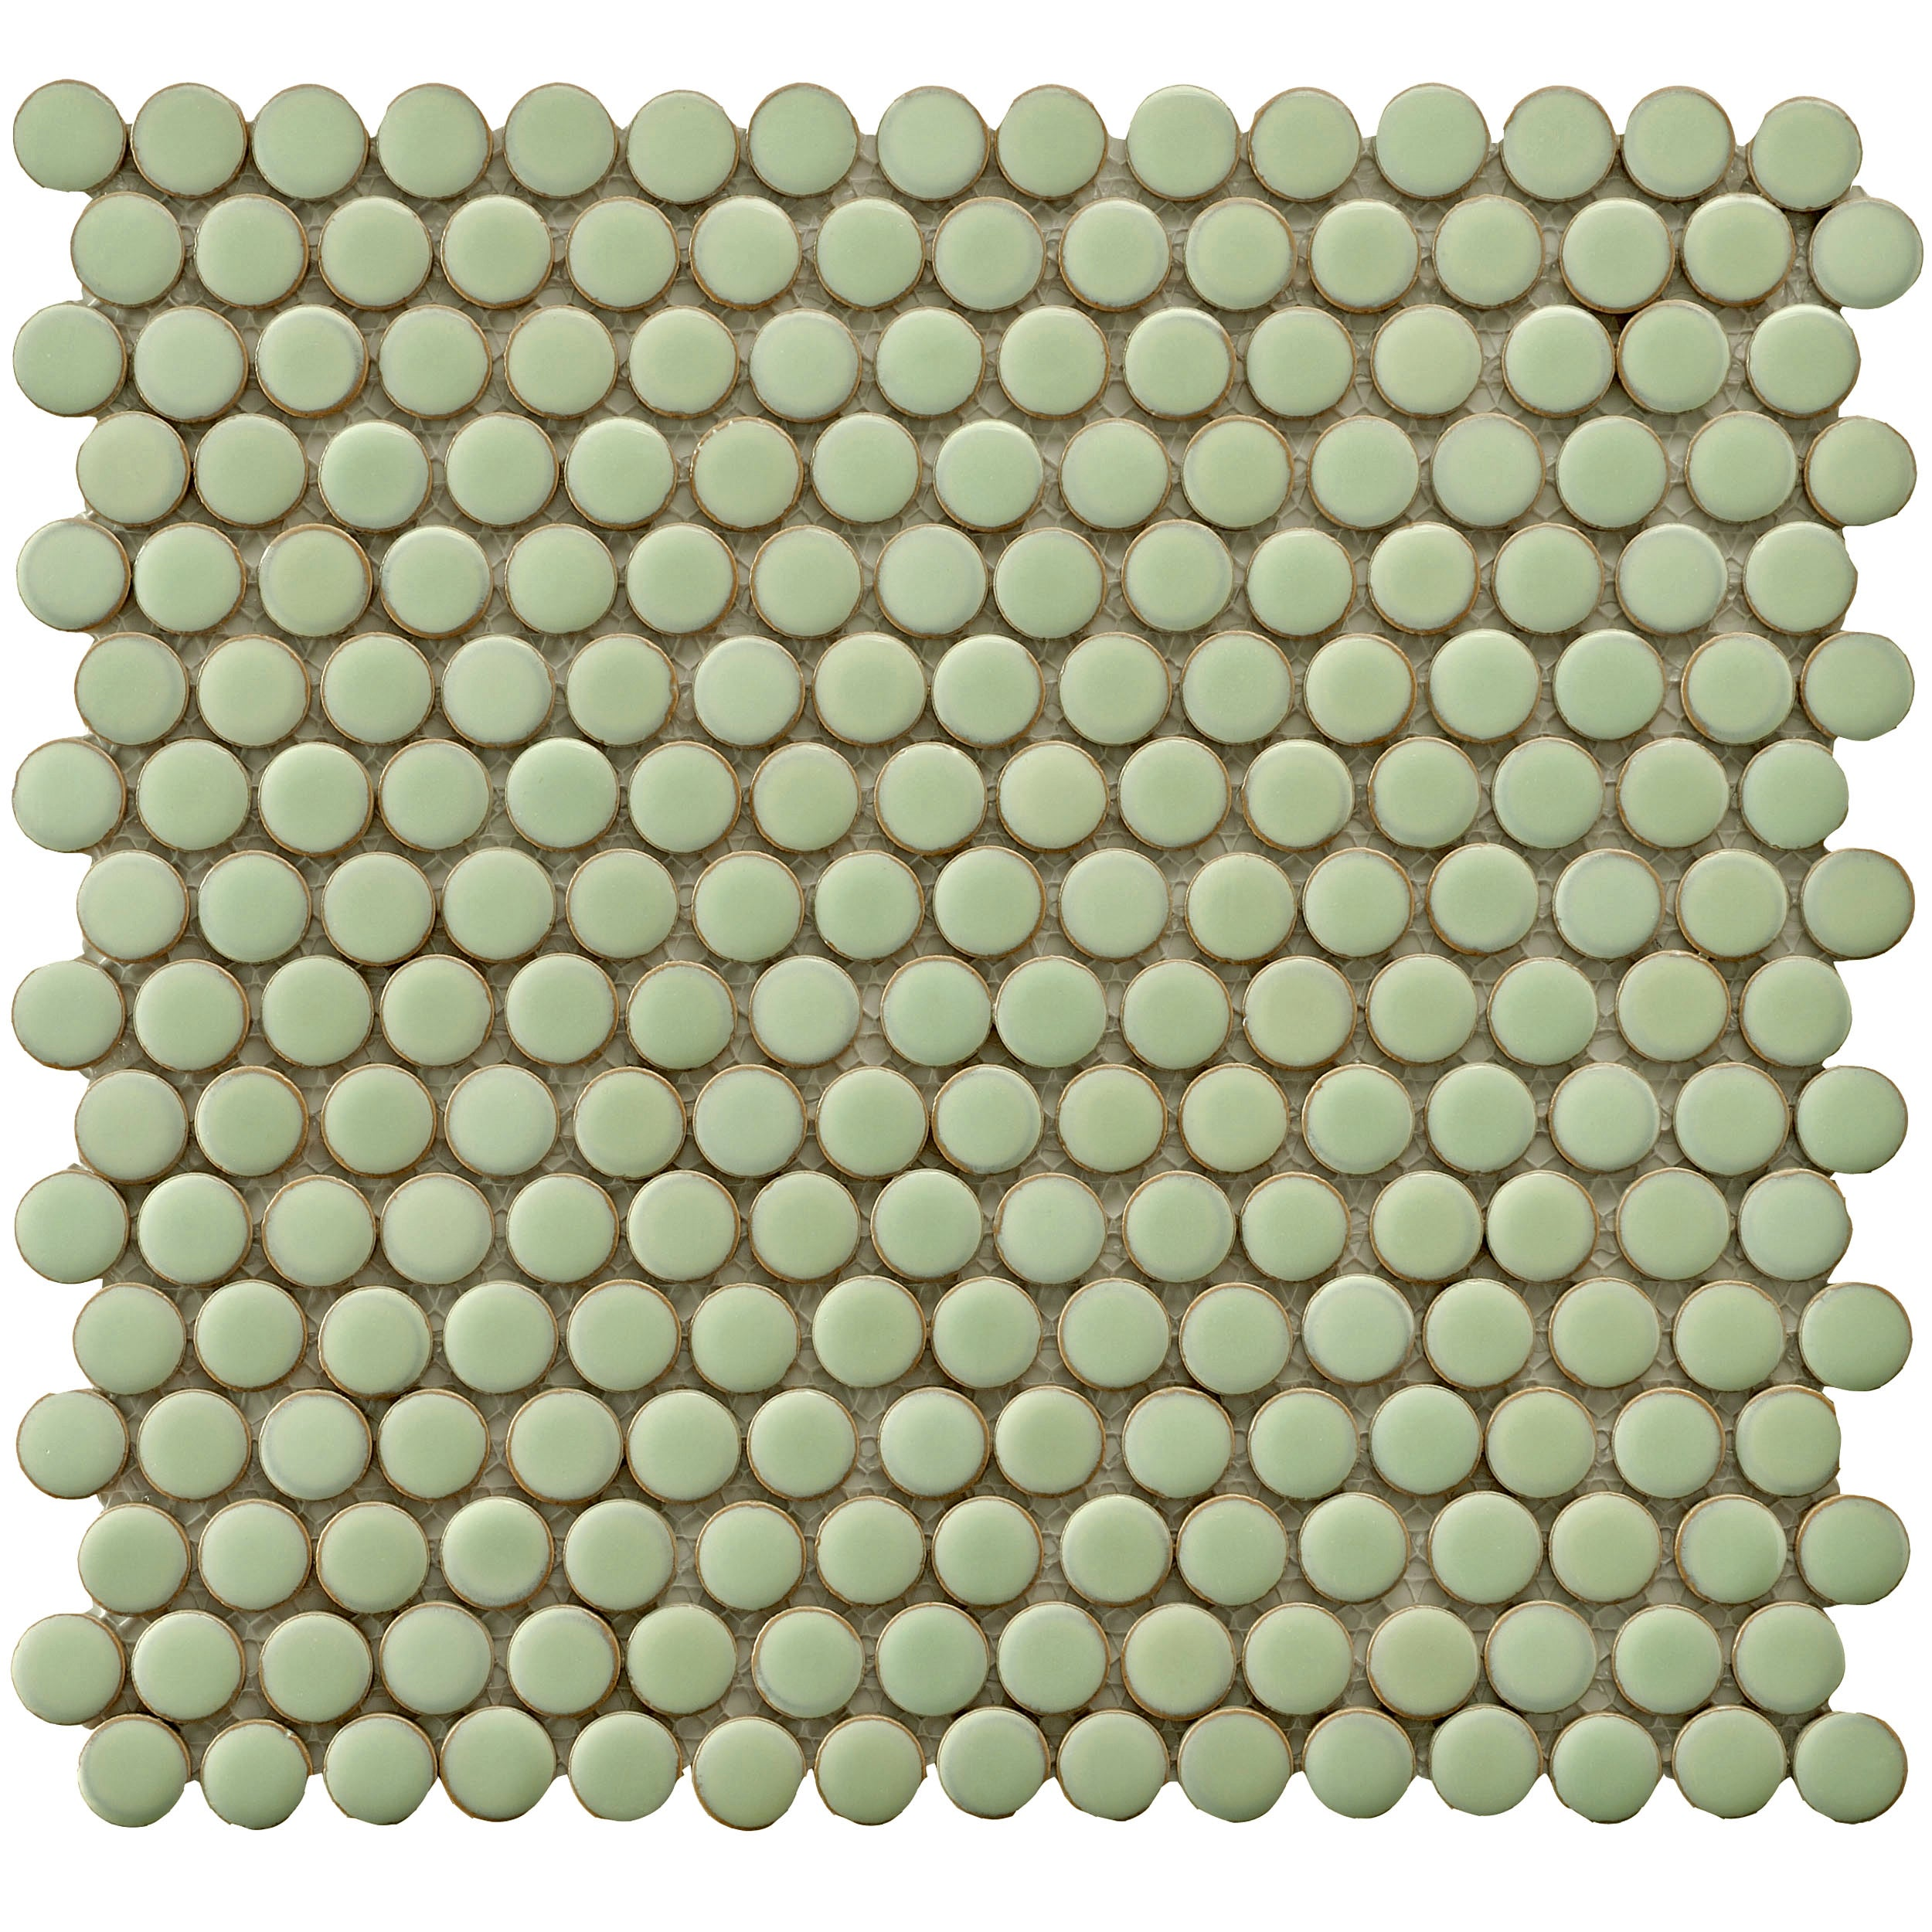 Overstock.com SomerTile 12.25x12-in Penny 3/4-in Lite Green Porcelain Mosaic Tile (Pack of 10) at Sears.com